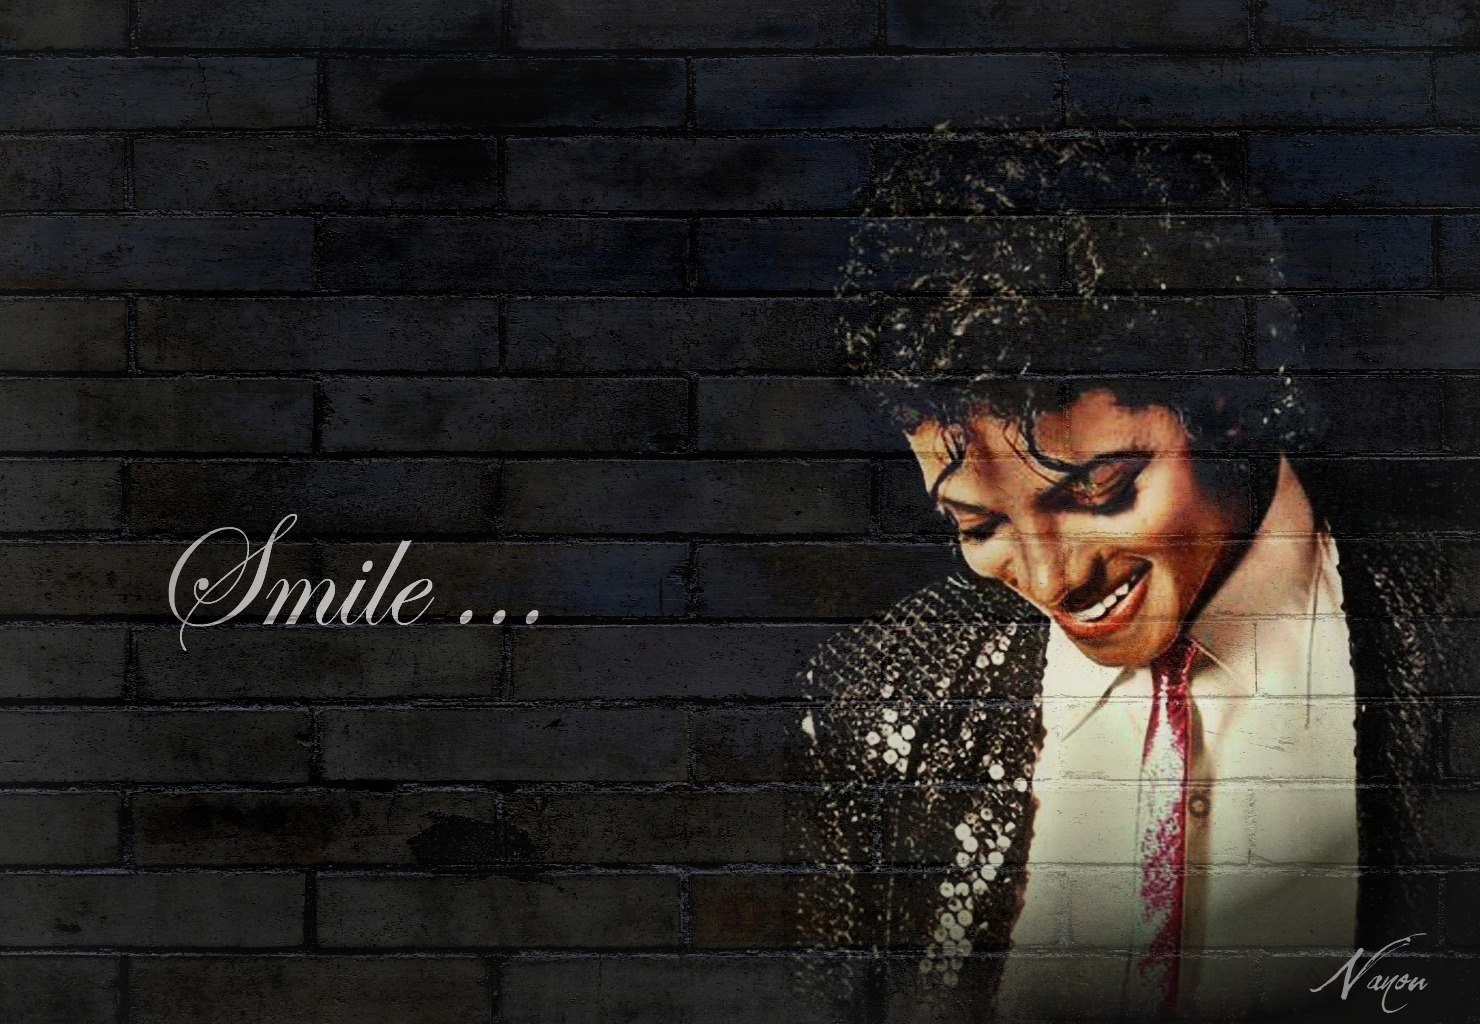 Smile - Michael Jackson Photo (18514968) - Fanpop